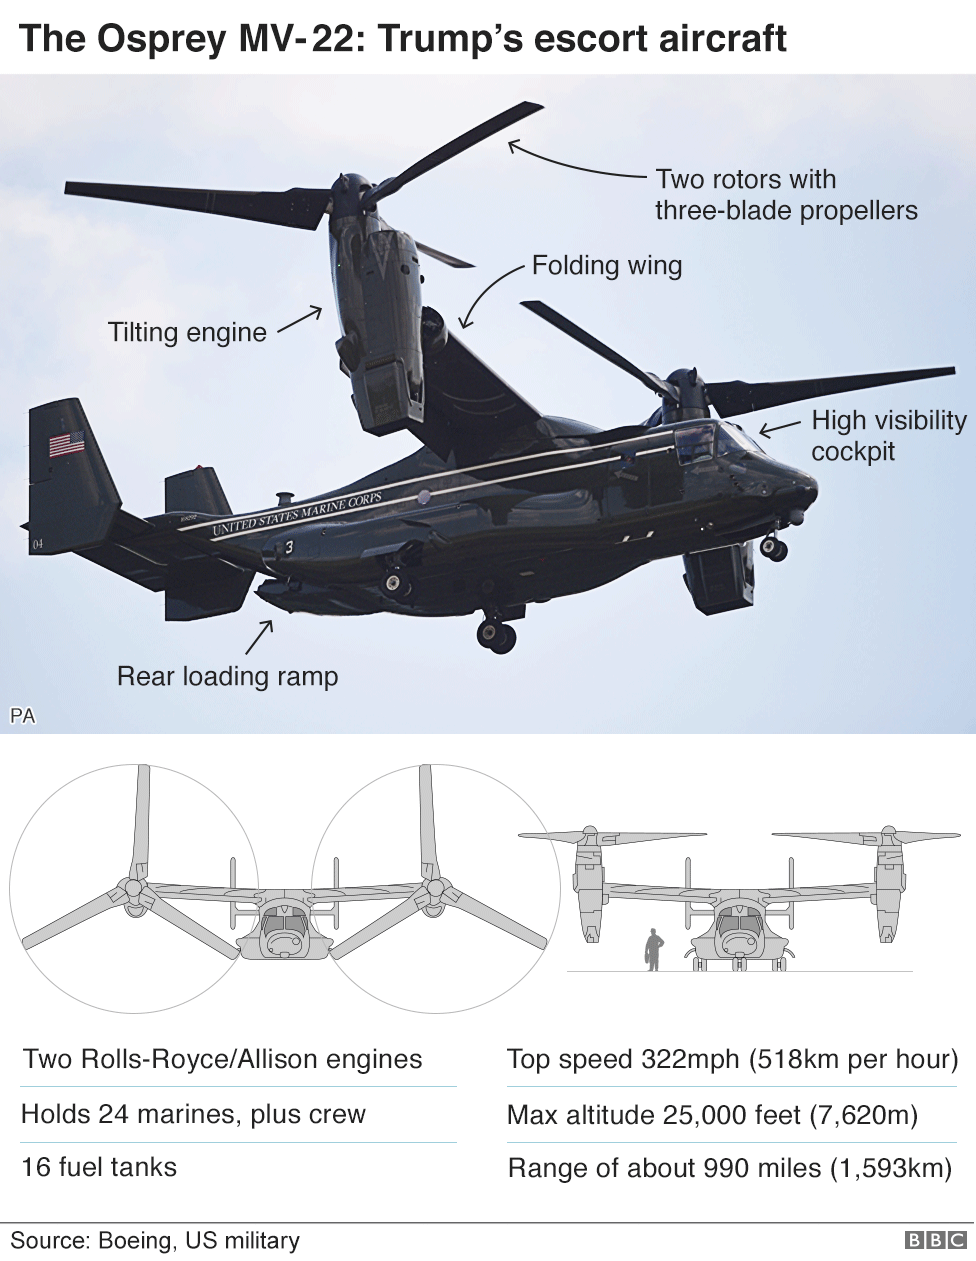 Infographic of the Osprey MV-22 aircraft